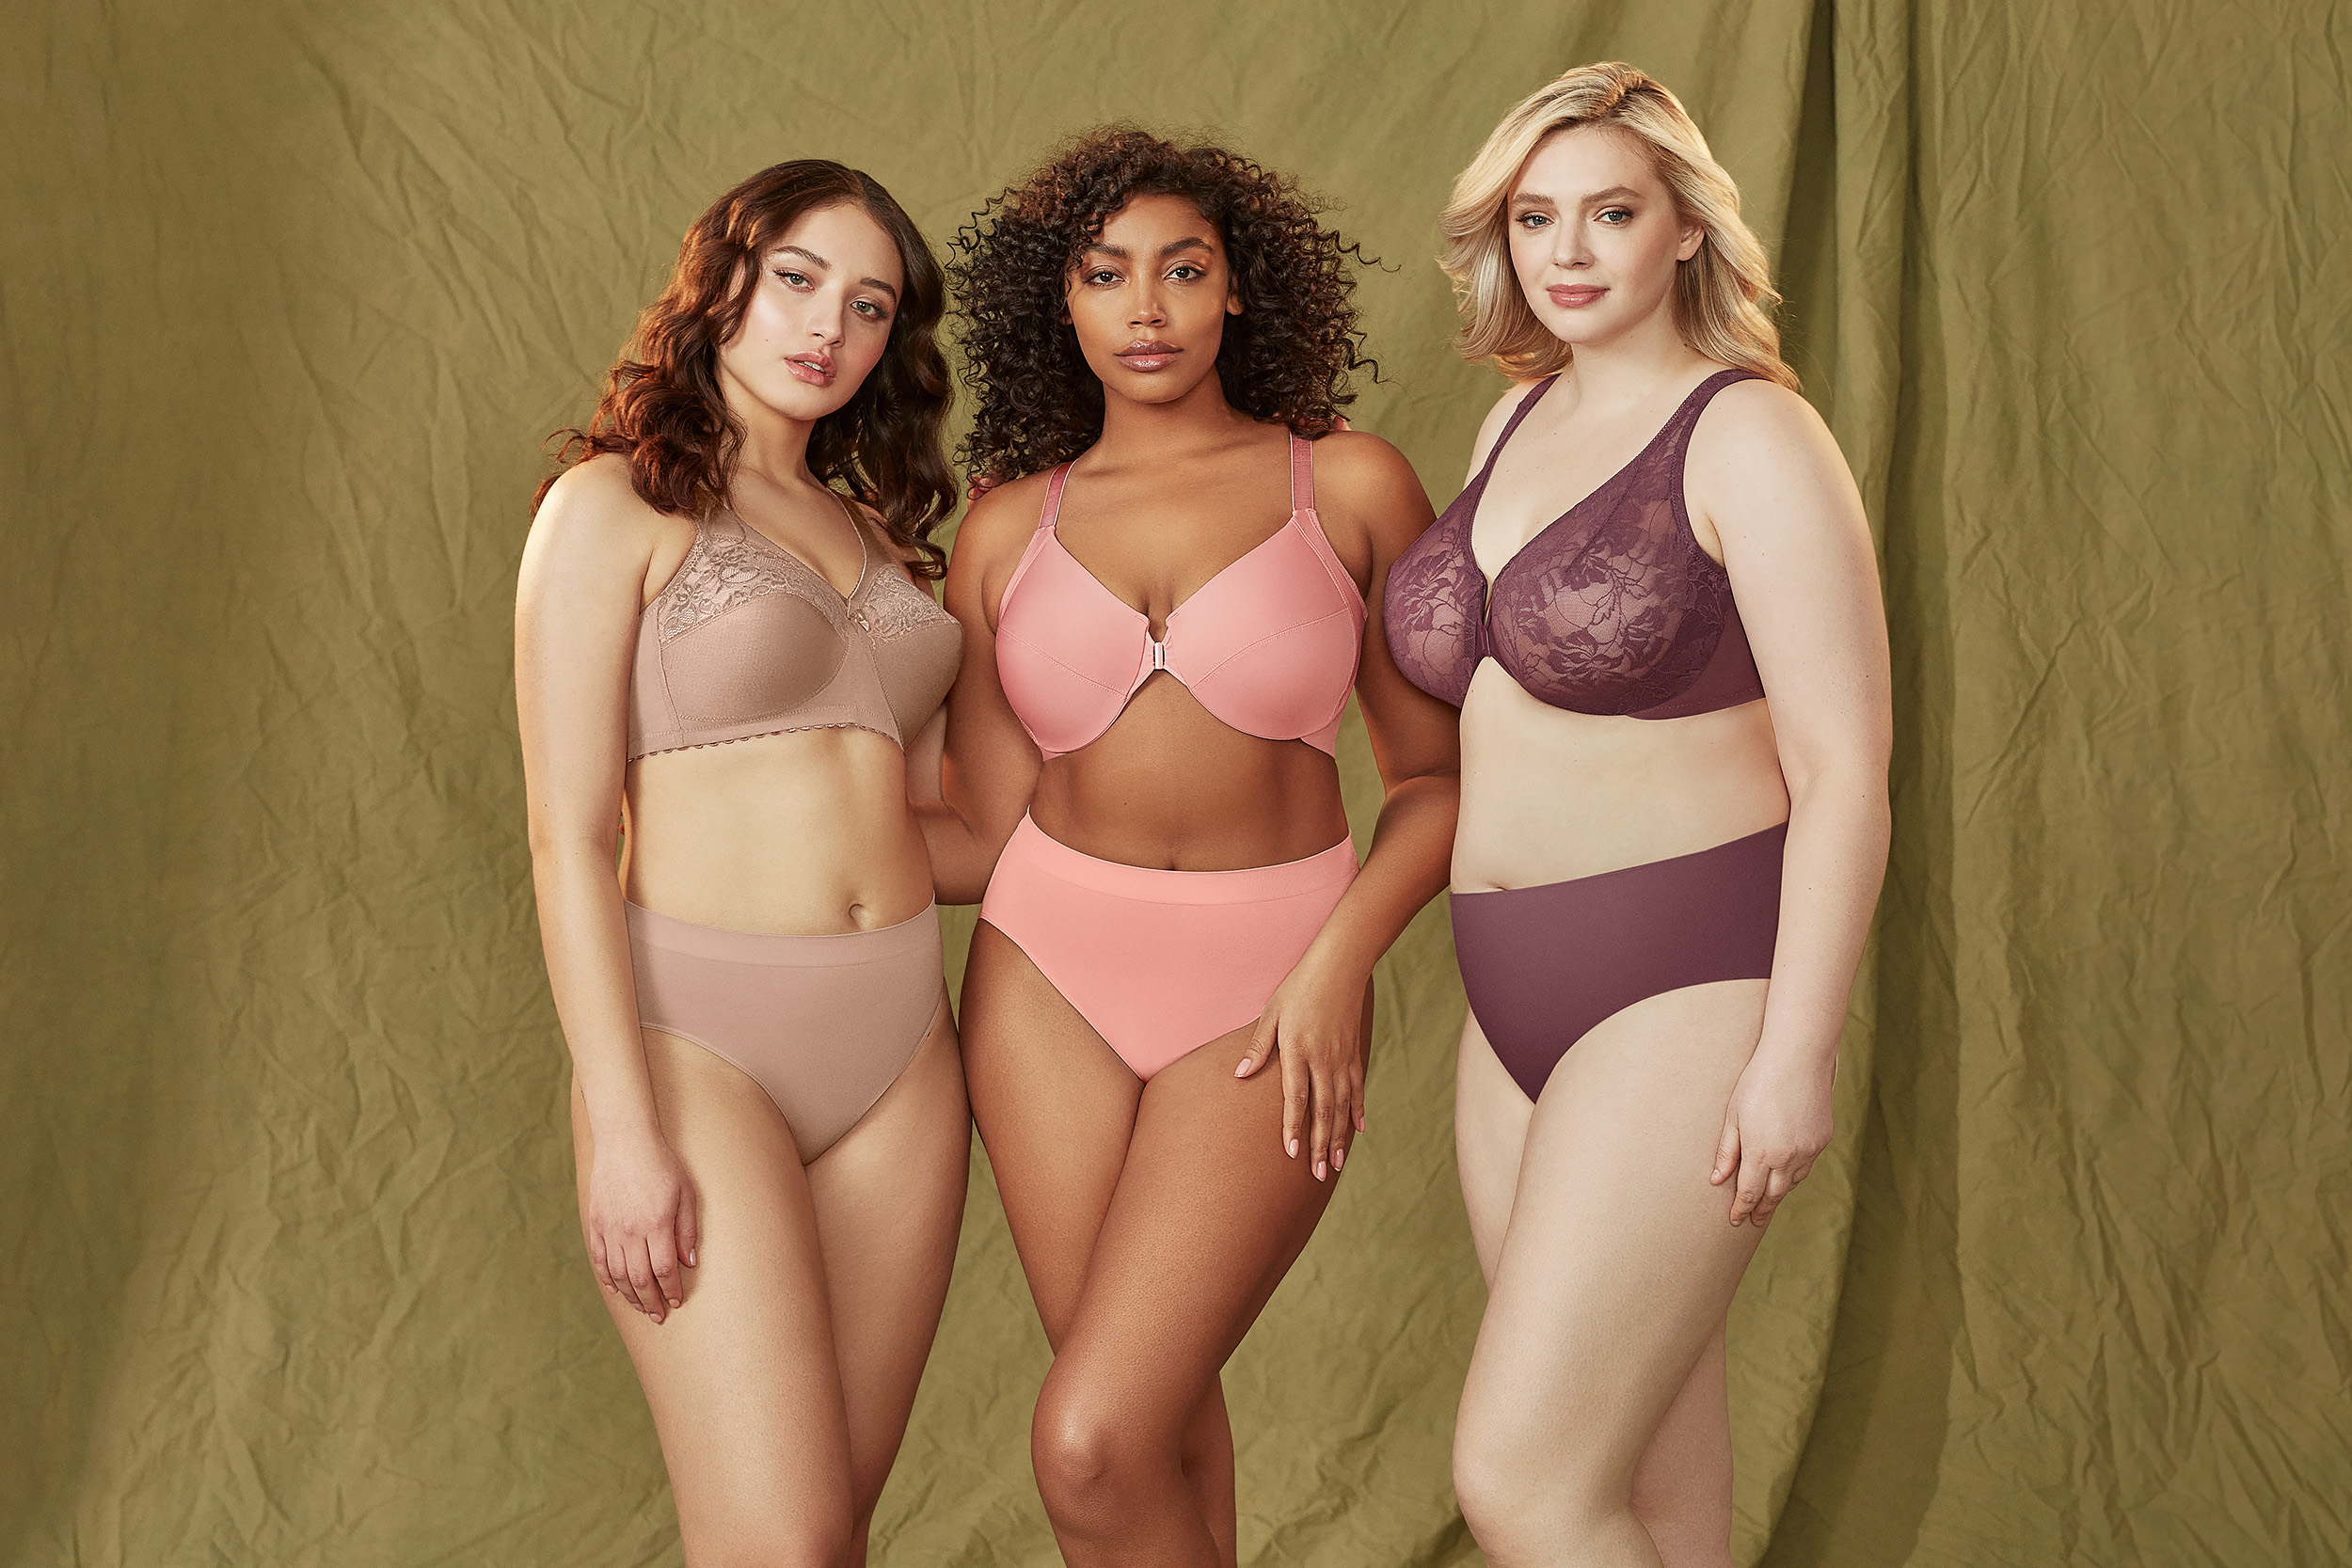 Lace Camisole Bras. invalid category id. Lace Camisole Bras. Showing 19 of 19 results that match your query. Search Product Result. Product - Crazy Romance Lavender Balconette Bra, Lavender Lace Bra. Product Image. Price $ Product Title. Crazy Romance Lavender Balconette Bra, Lavender Lace Bra.